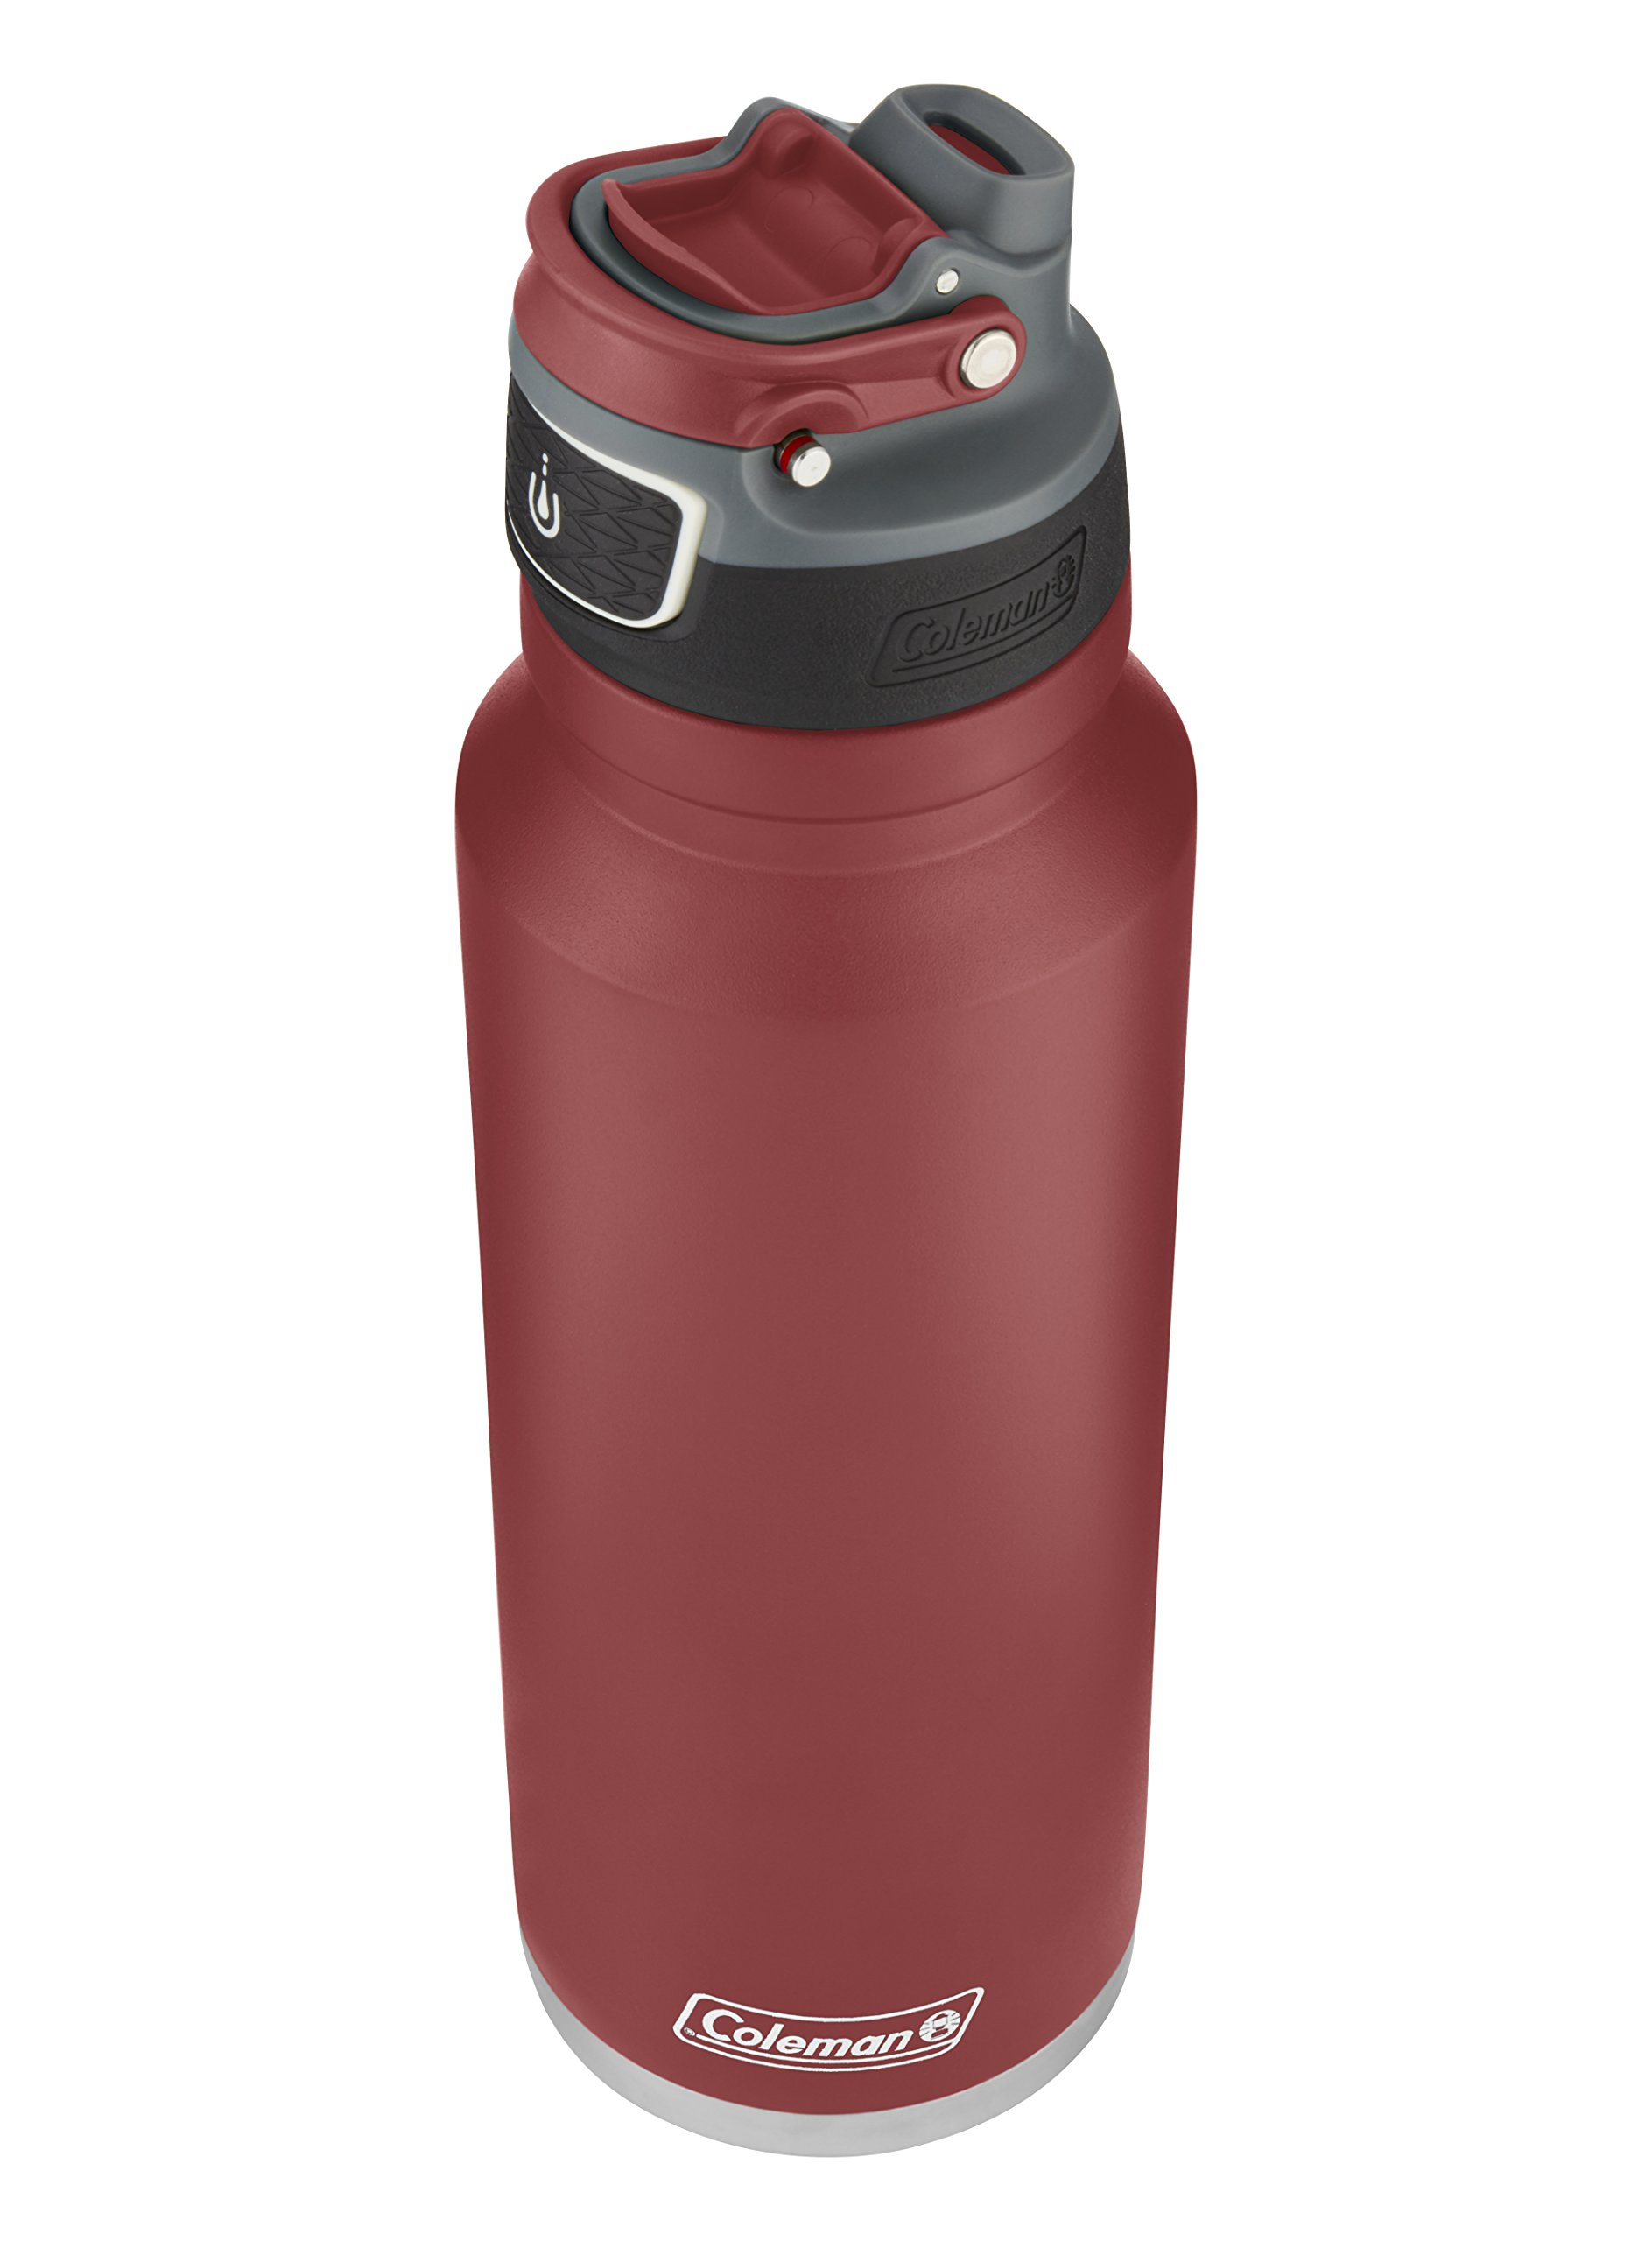 Coleman FreeFlow AUTOSEAL Insulated Stainless Steel Water Bottle, Heritage Red, 40 oz.